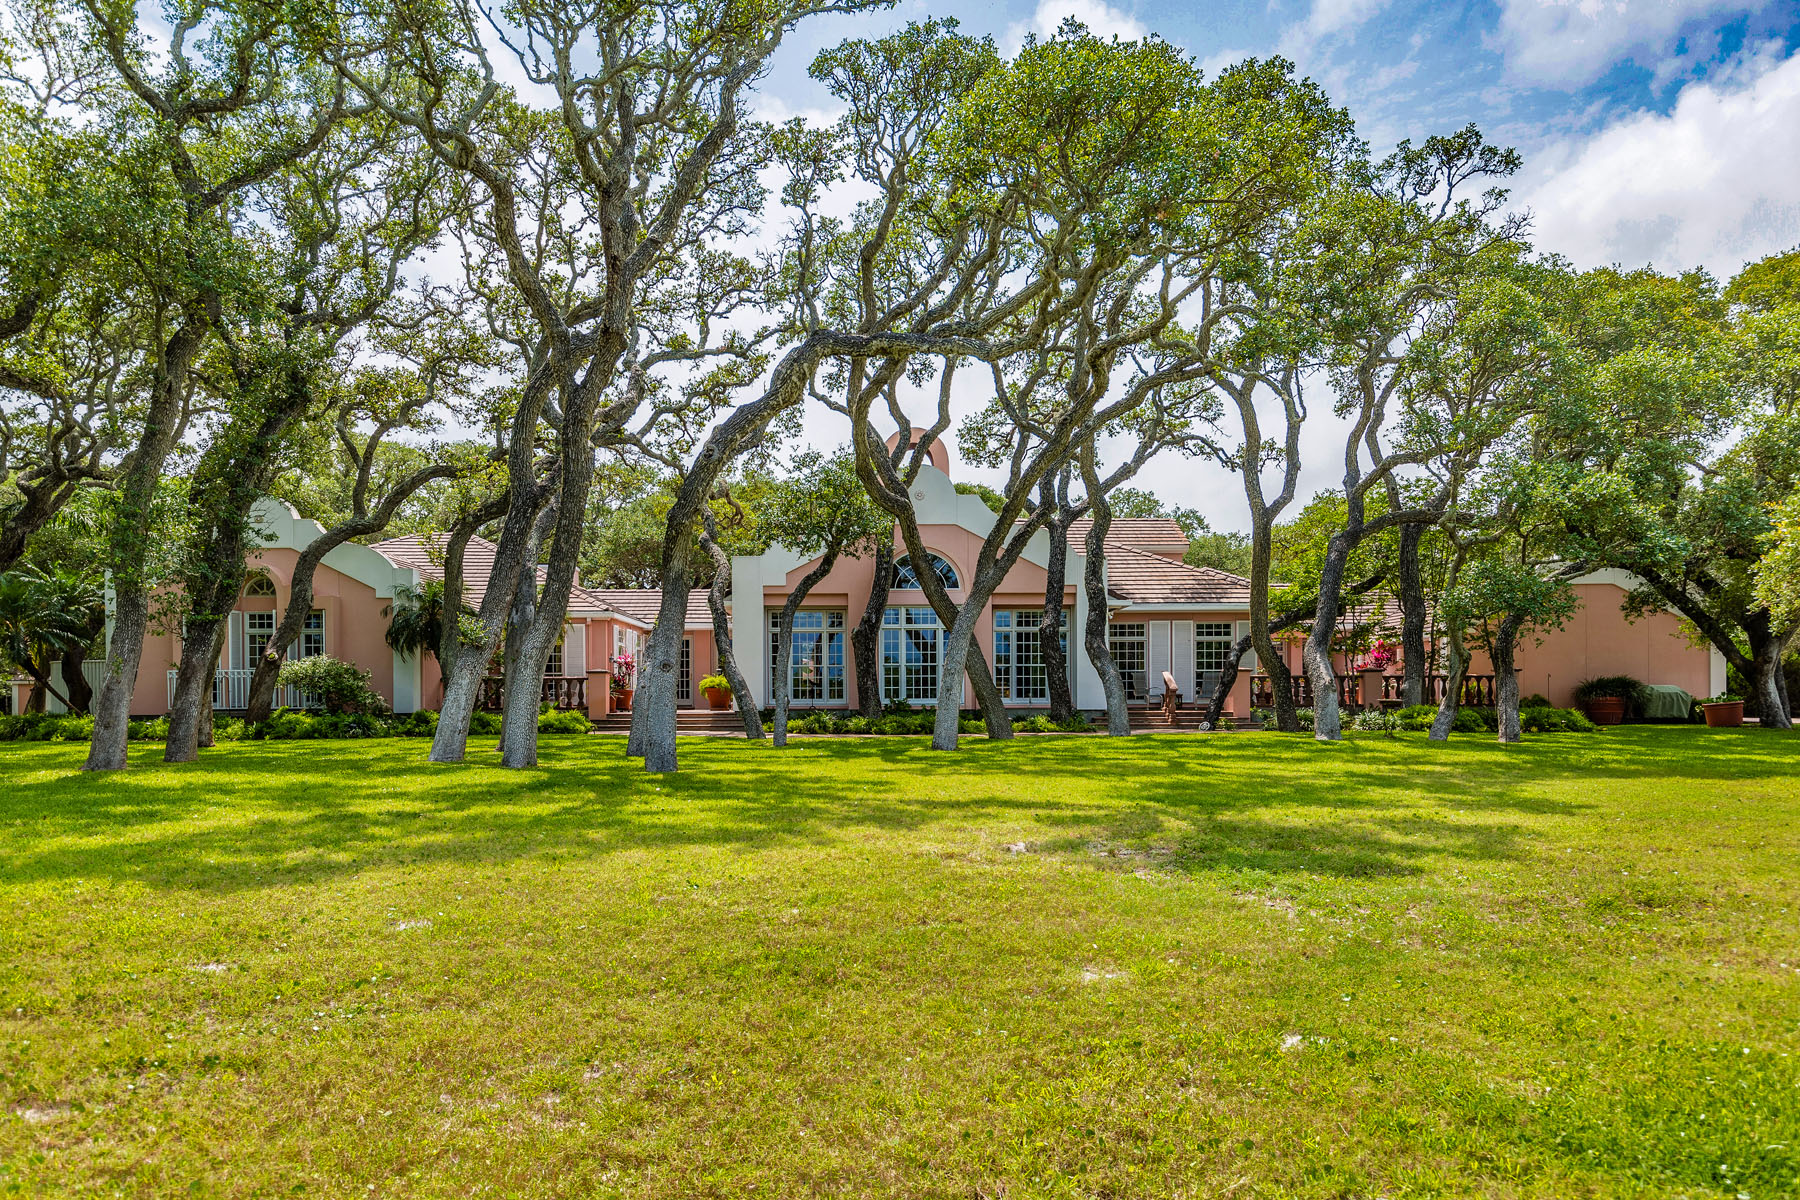 Casa Unifamiliar por un Venta en Villa Maria Estate 2114 Lakeview Dr Rockport, Texas 78382 Estados Unidos